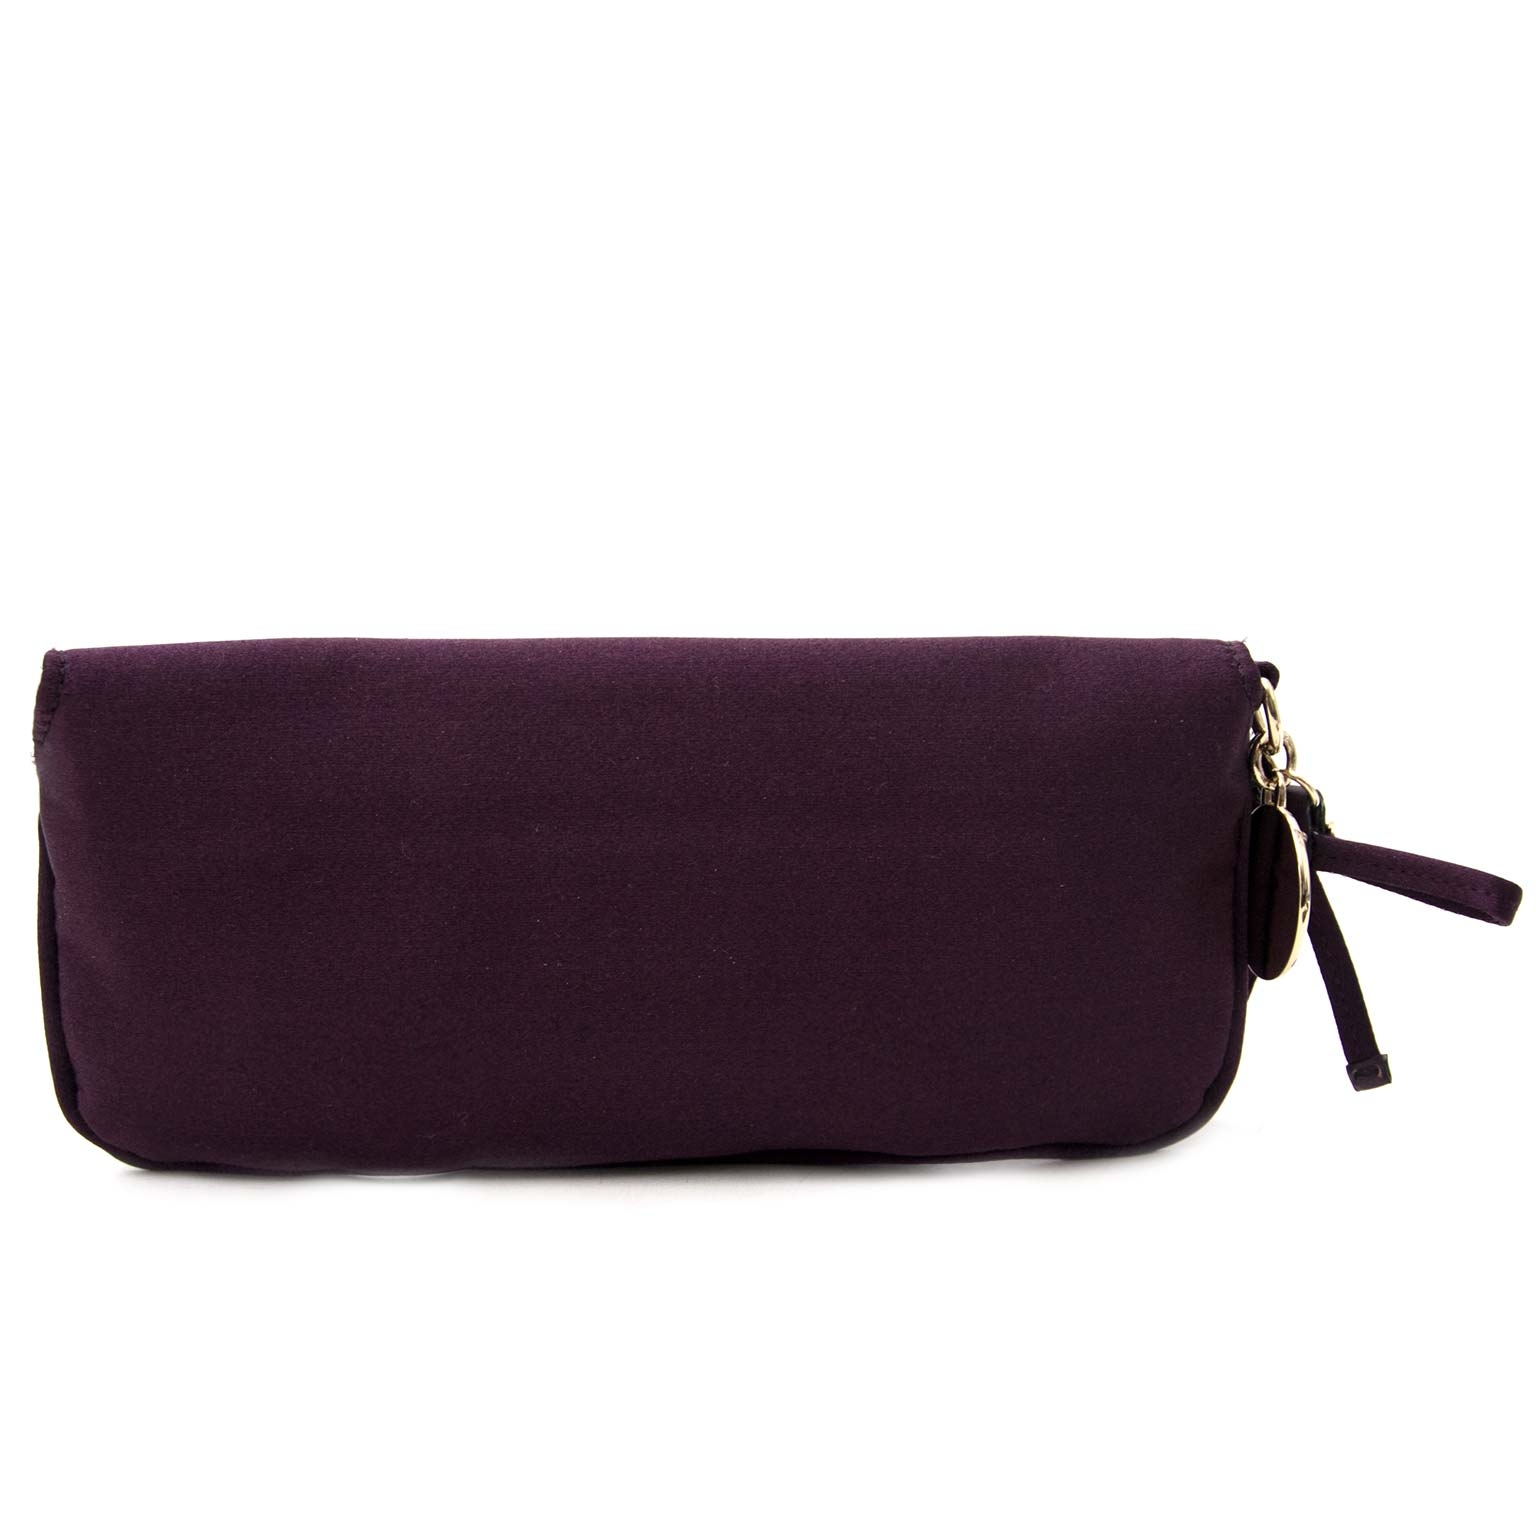 Gucci Crystals Purple Clutch Bag